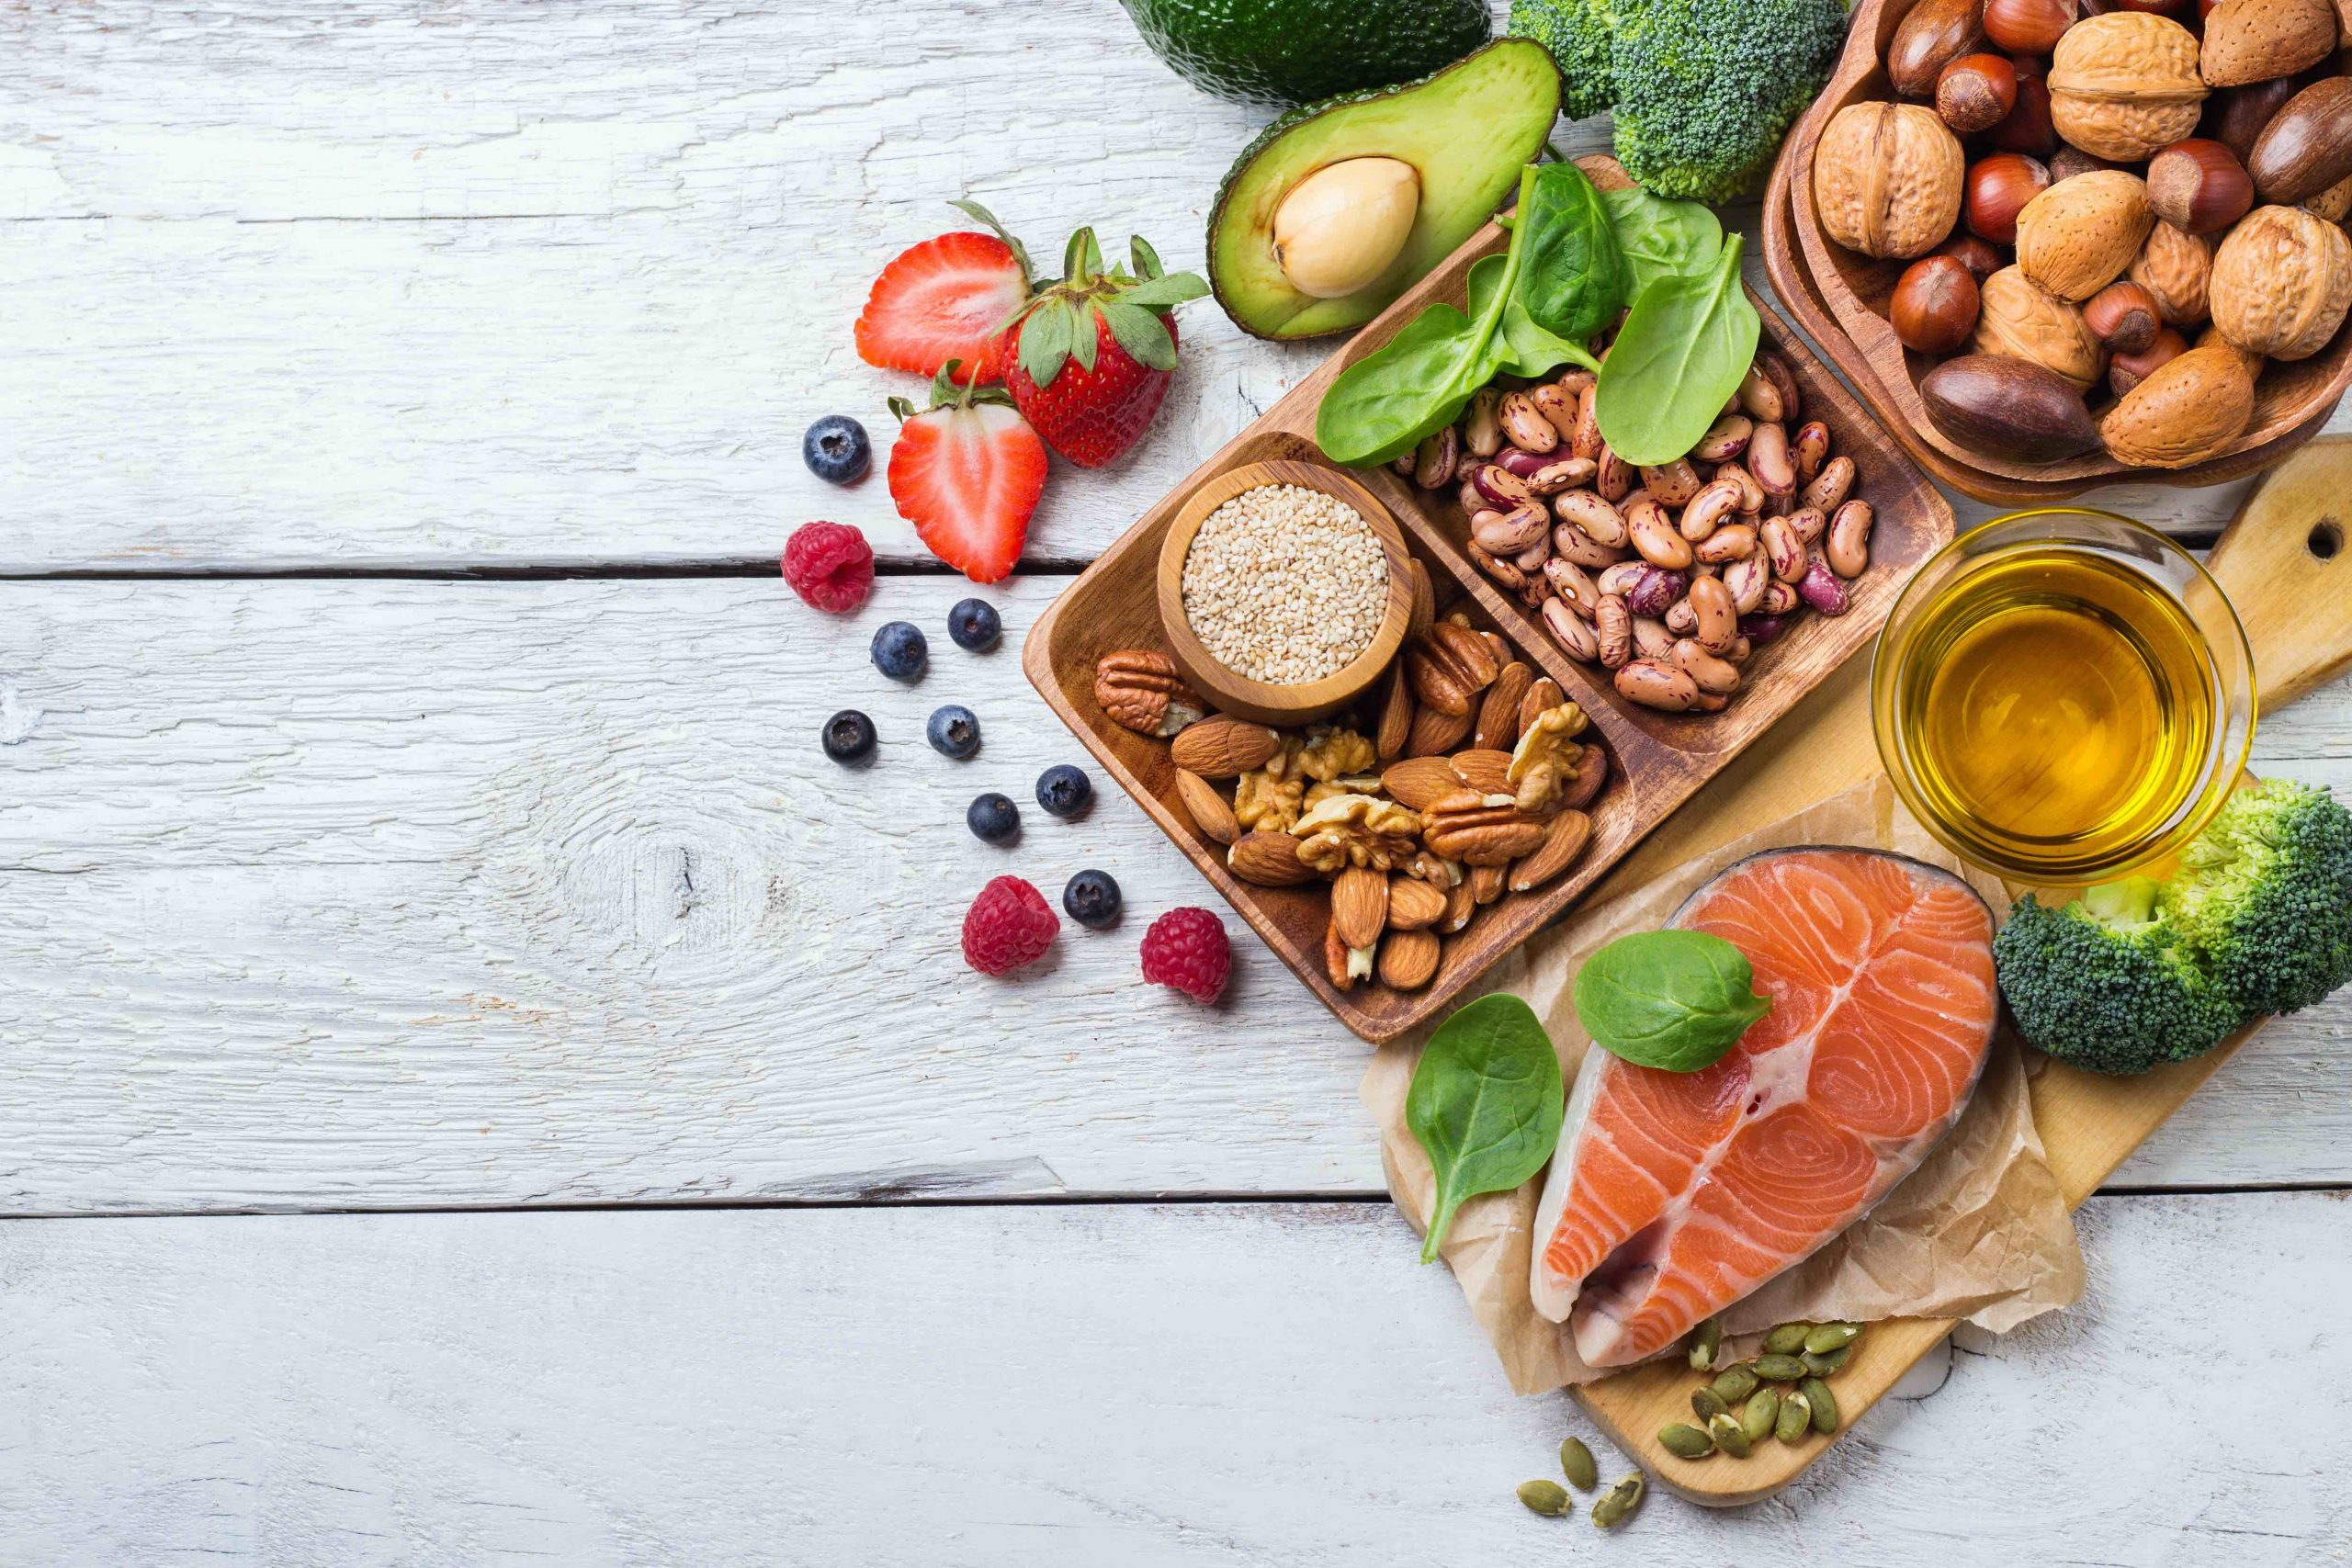 healthy eating part of lifestyle medicine movement